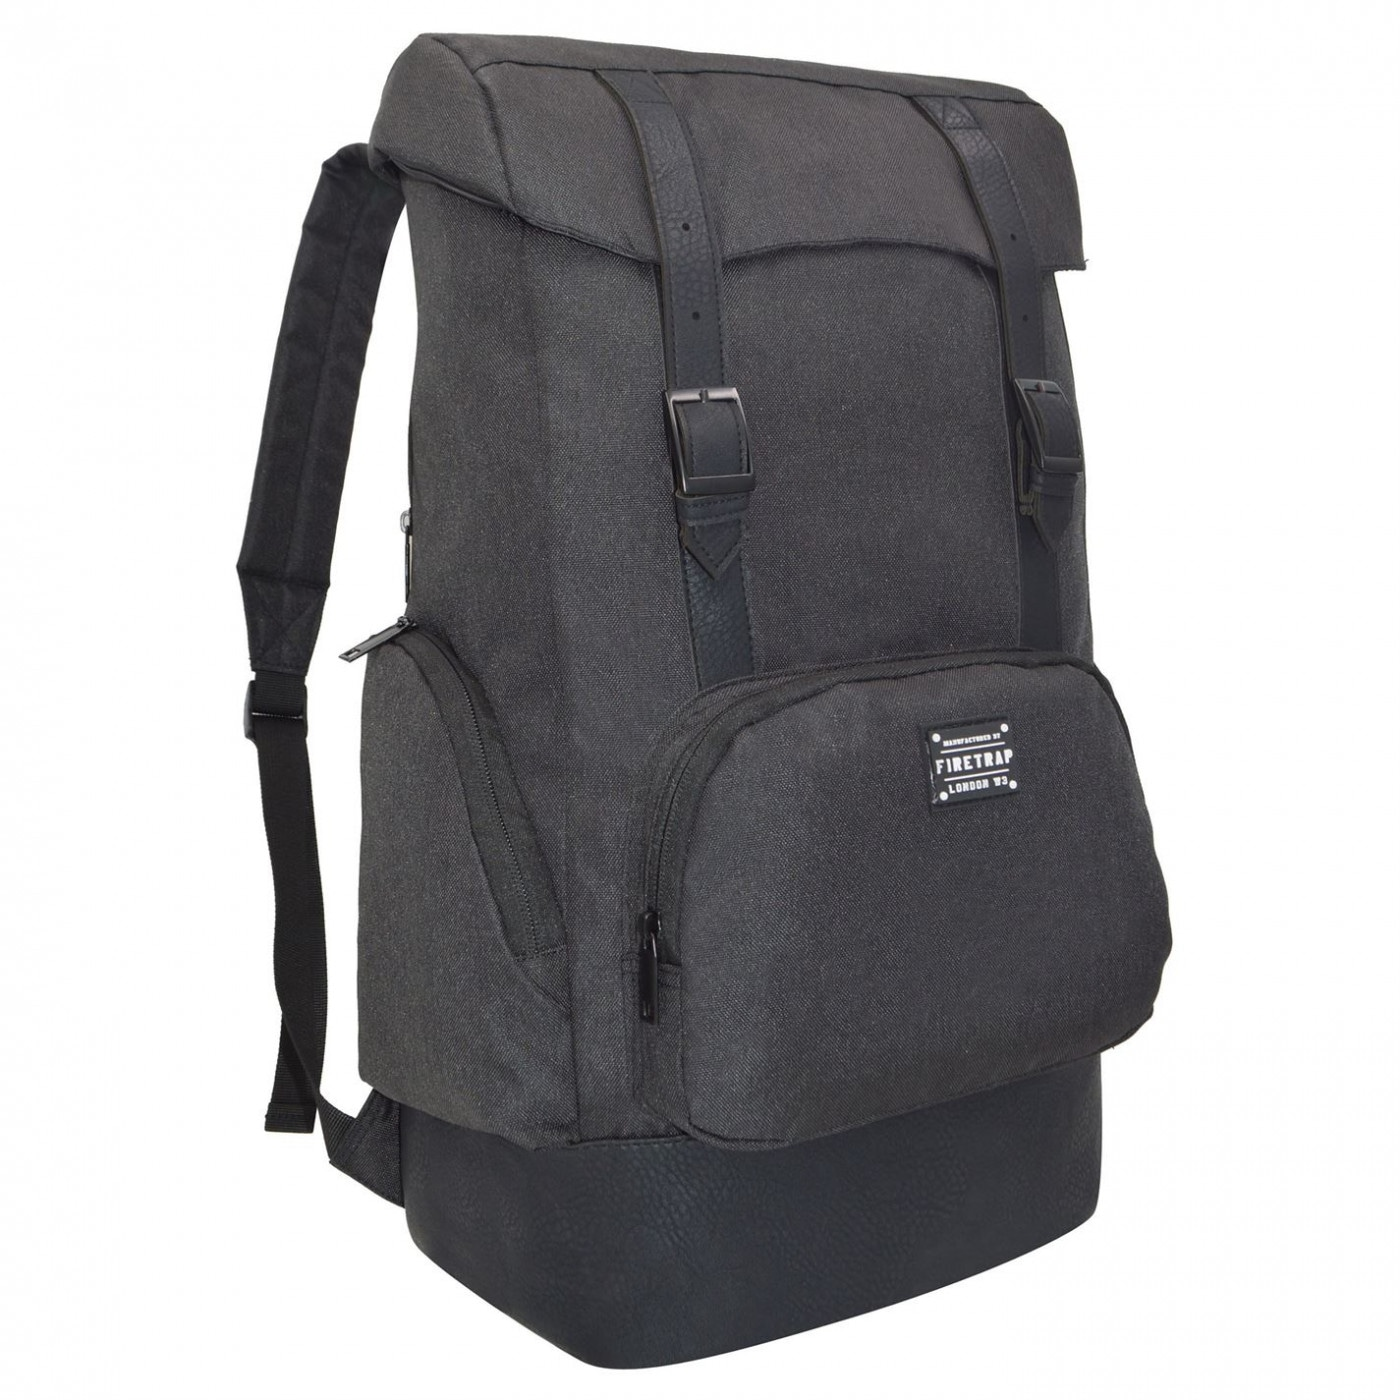 Firetrap Hike Duffel Bag